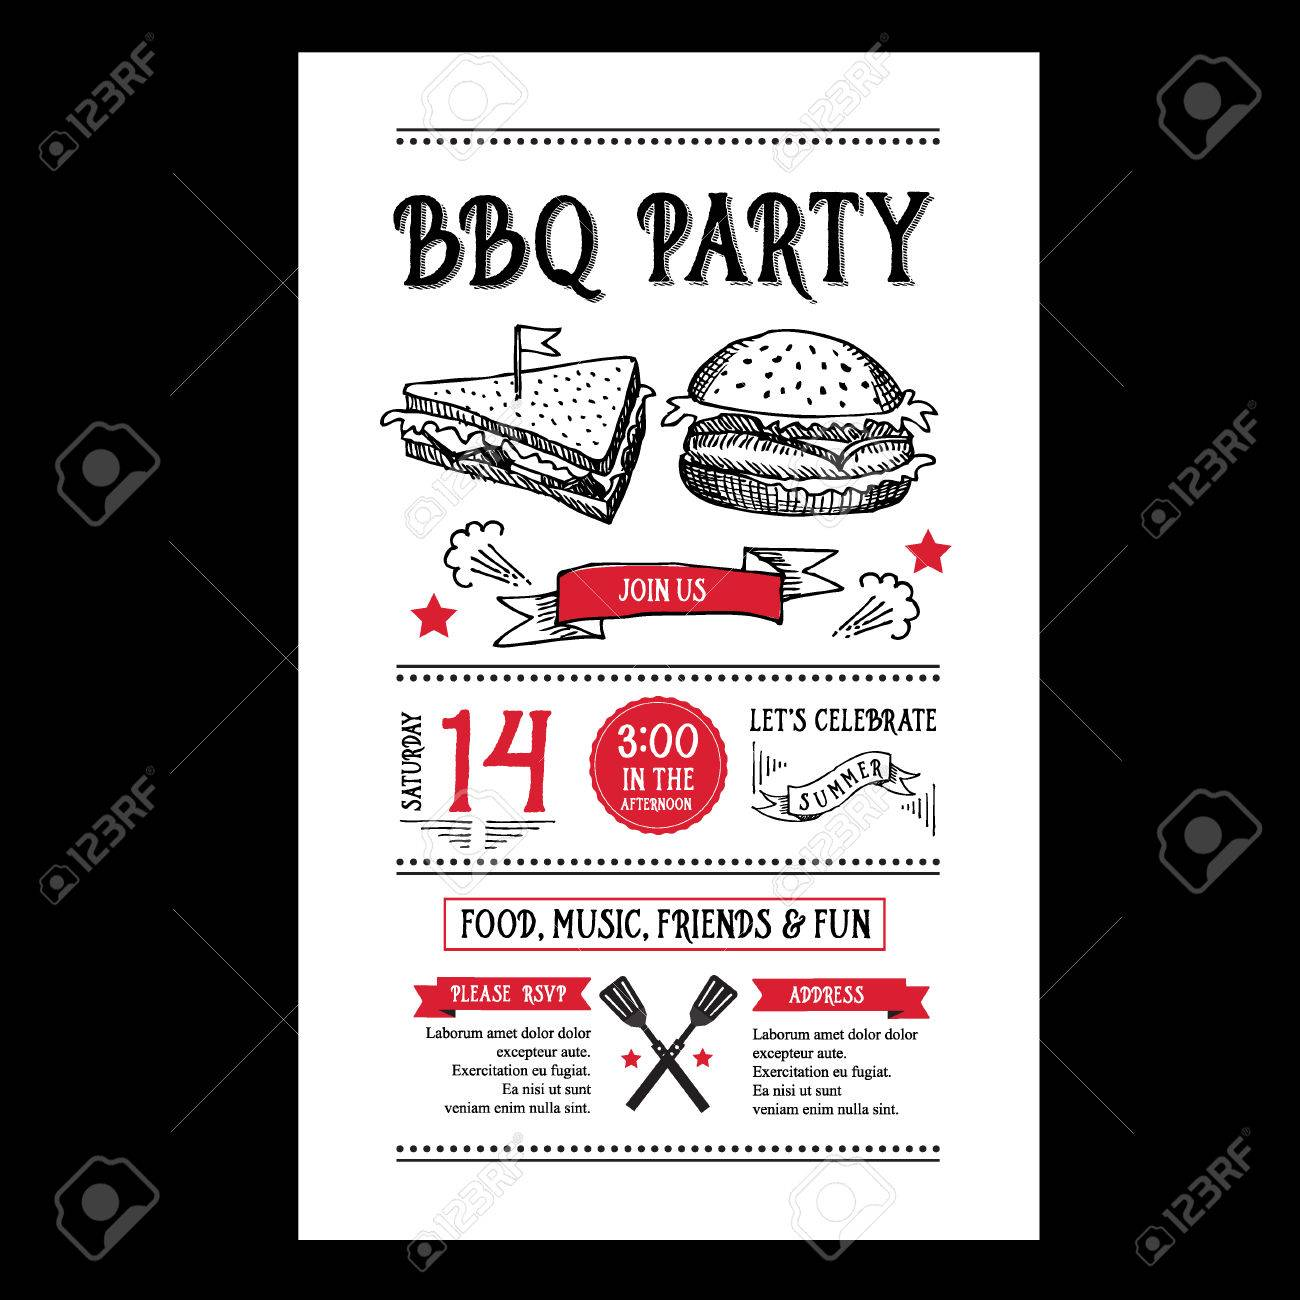 Cookout border clipart hot dog cookout invite stock vector art - Cookout Flyer Barbecue Party Invitation Bbq Brochure Menu Design